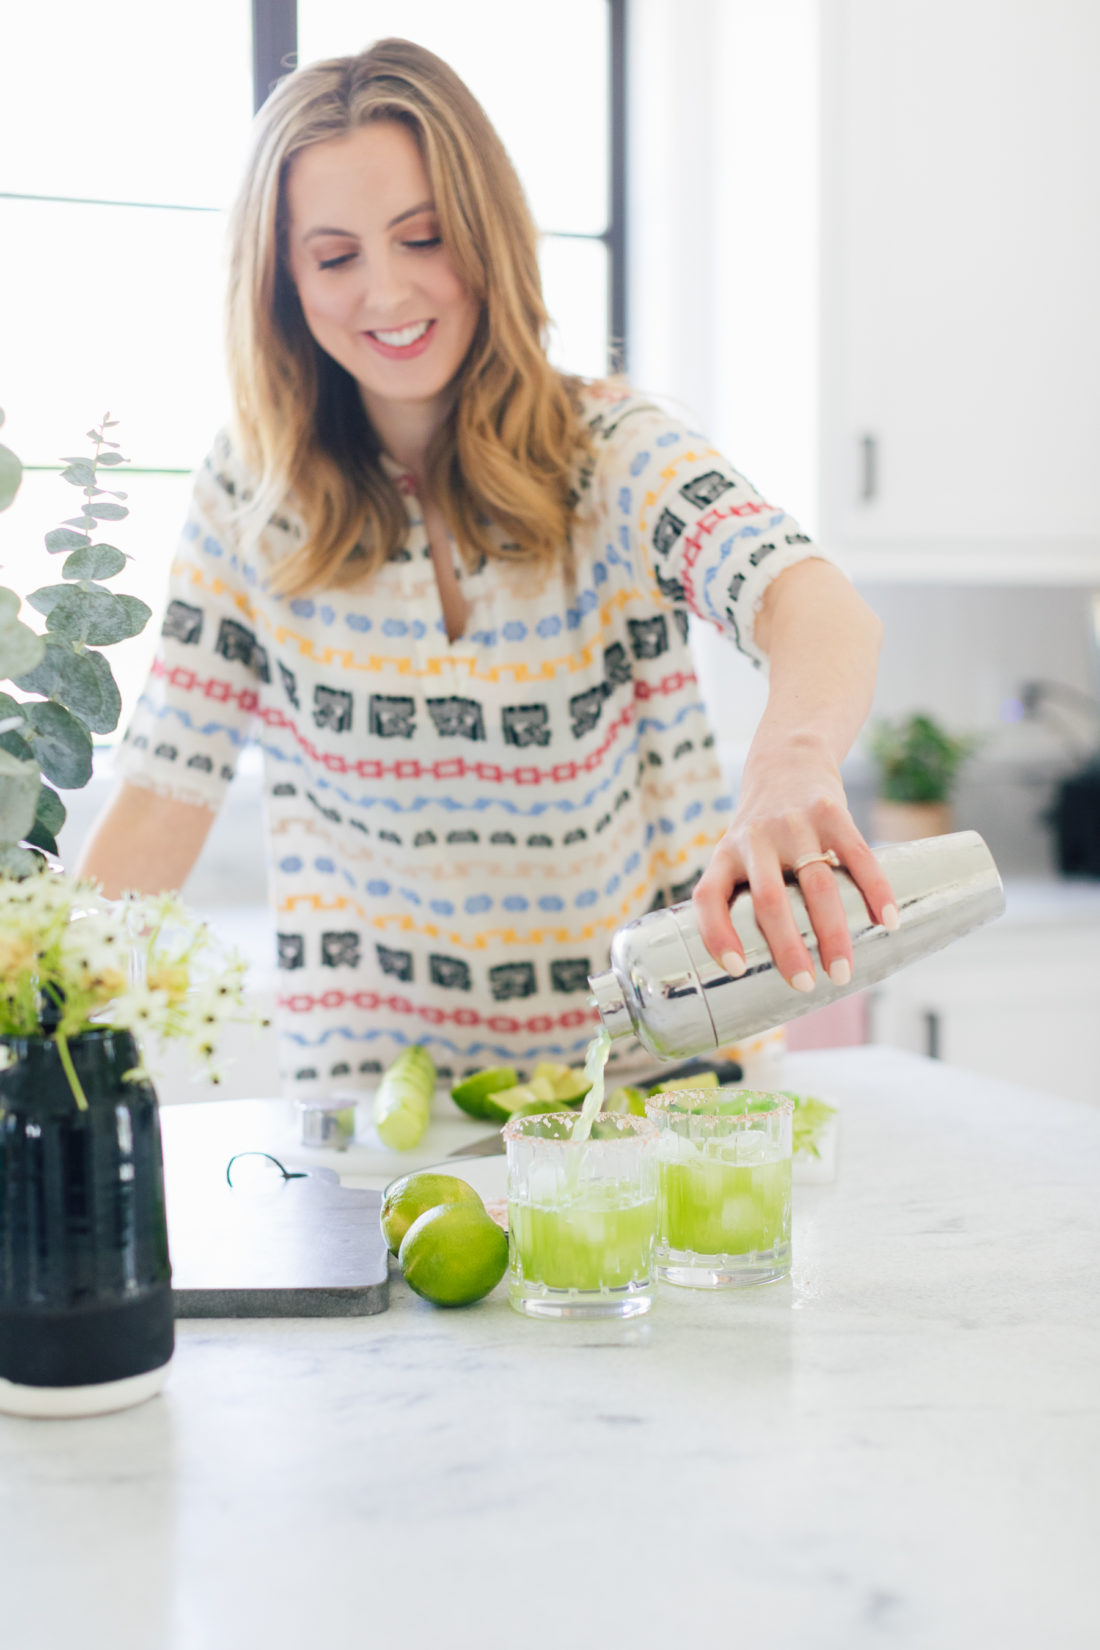 Eva Amurri Martino of Happily Eva After pours cucumber margaritas into a glass at her home in Connecticut